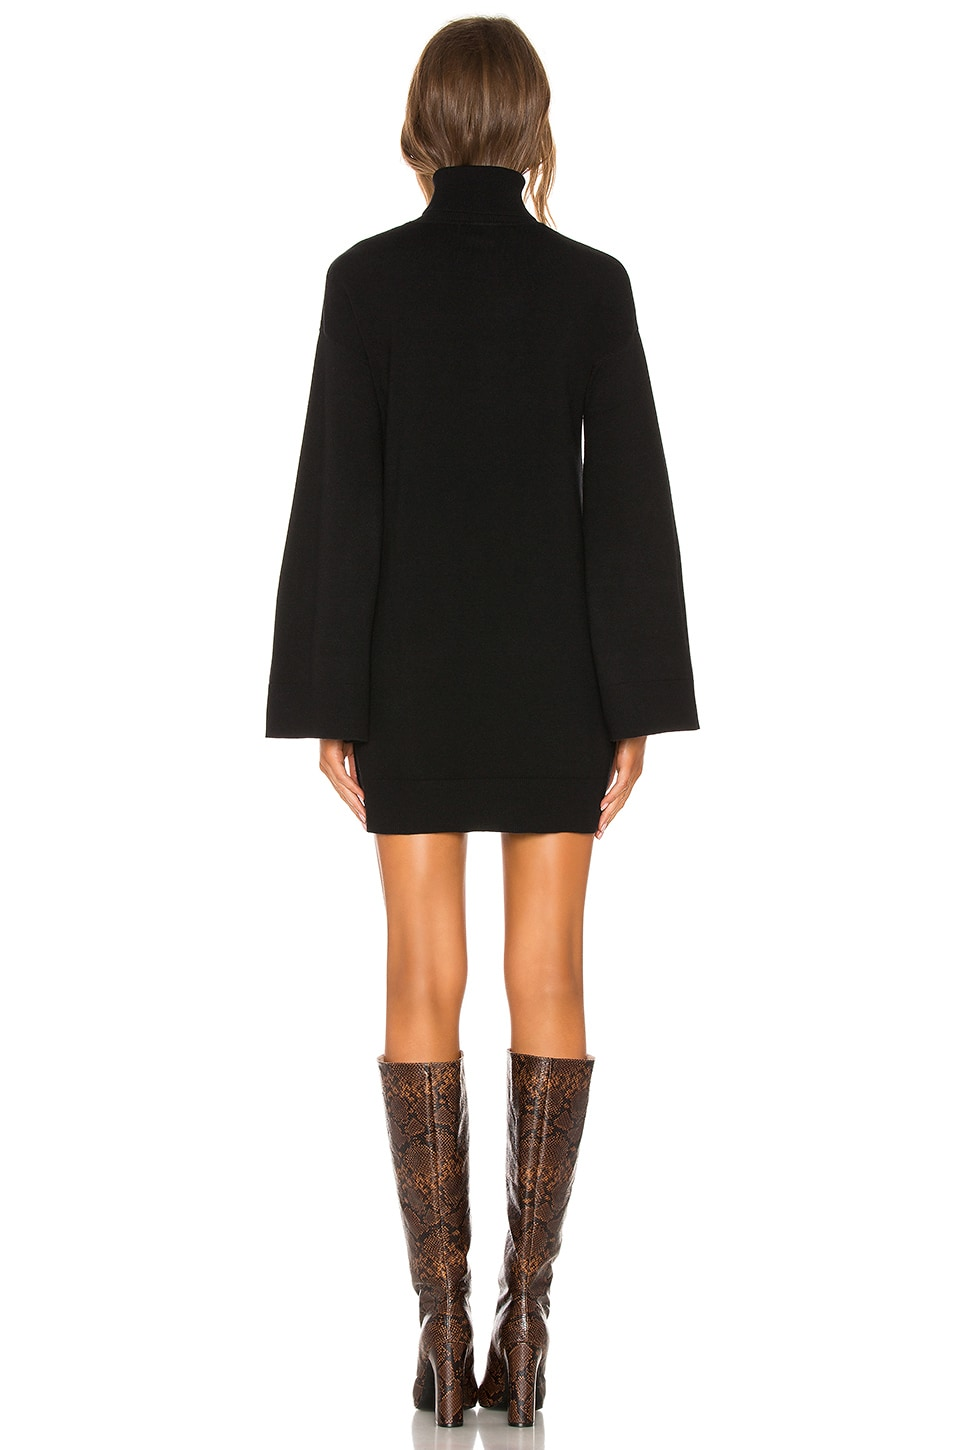 Fallon Sweater Dress, view 3, click to view large image.